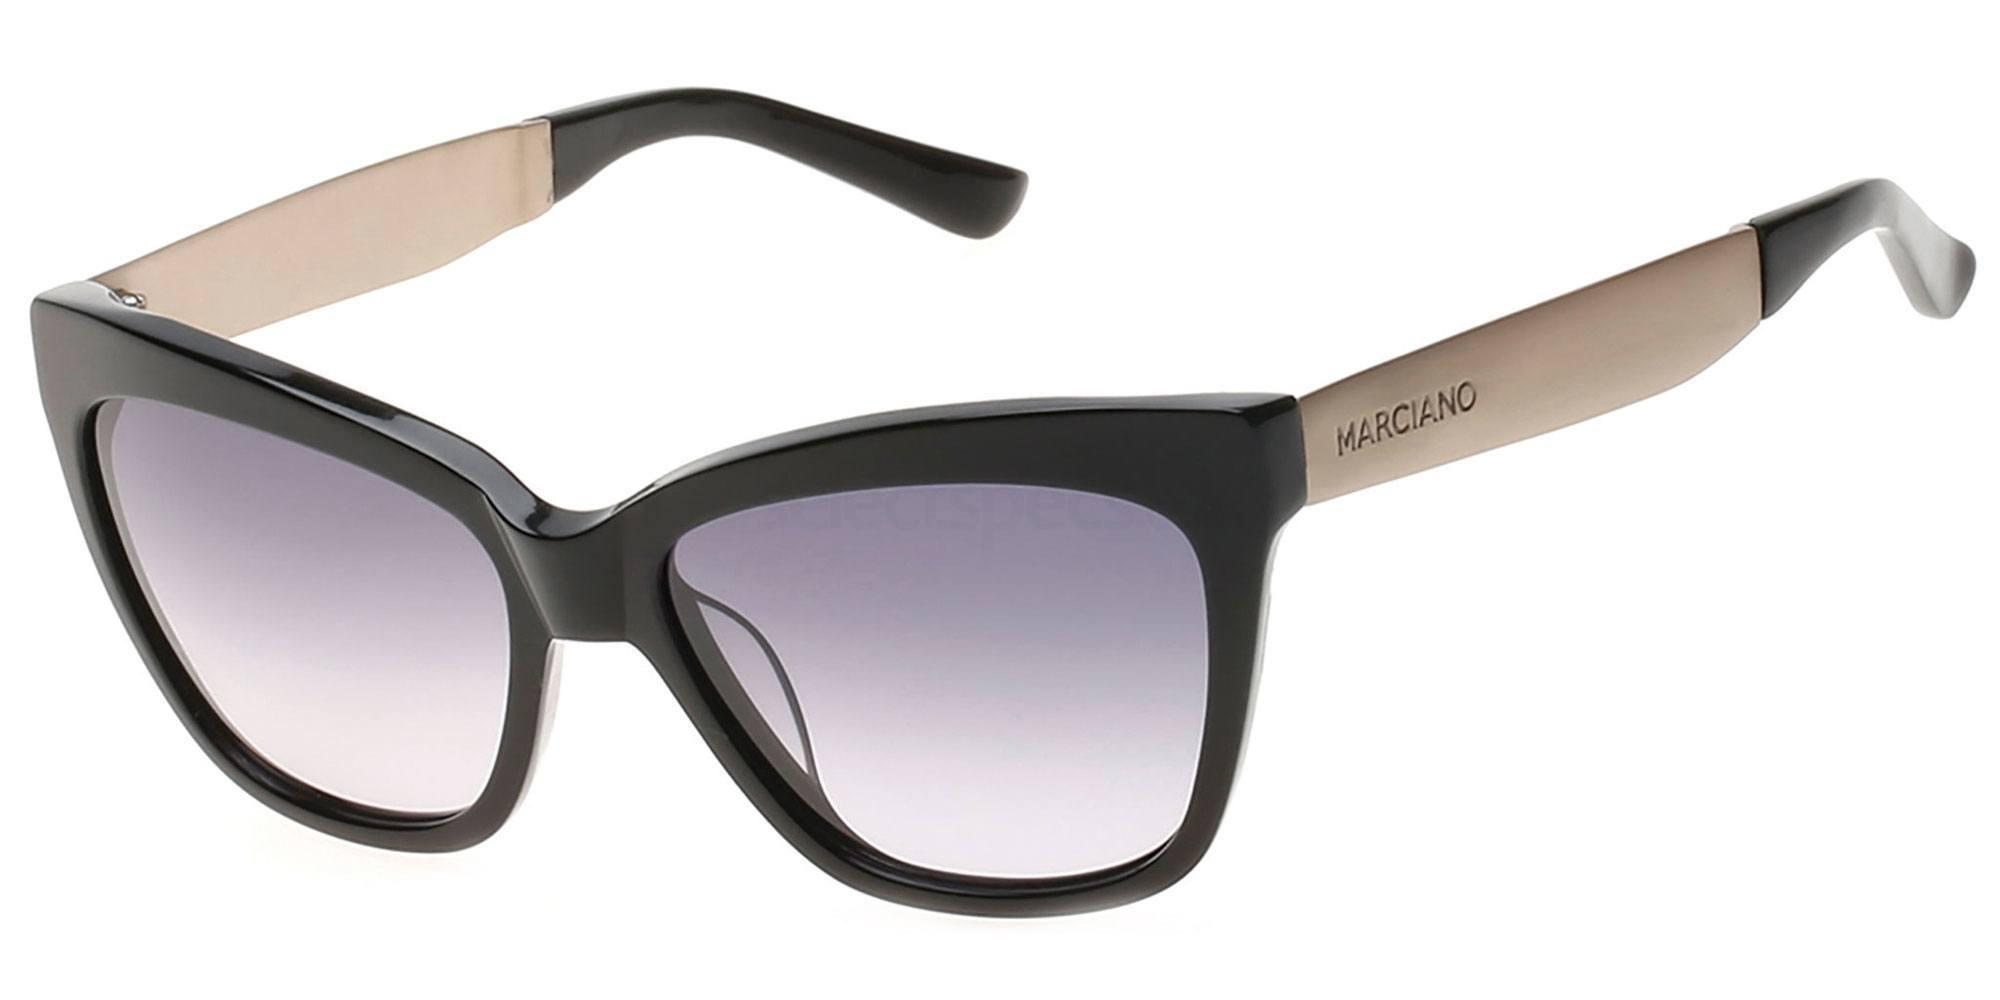 01B GM 733 Sunglasses, Guess by Marciano